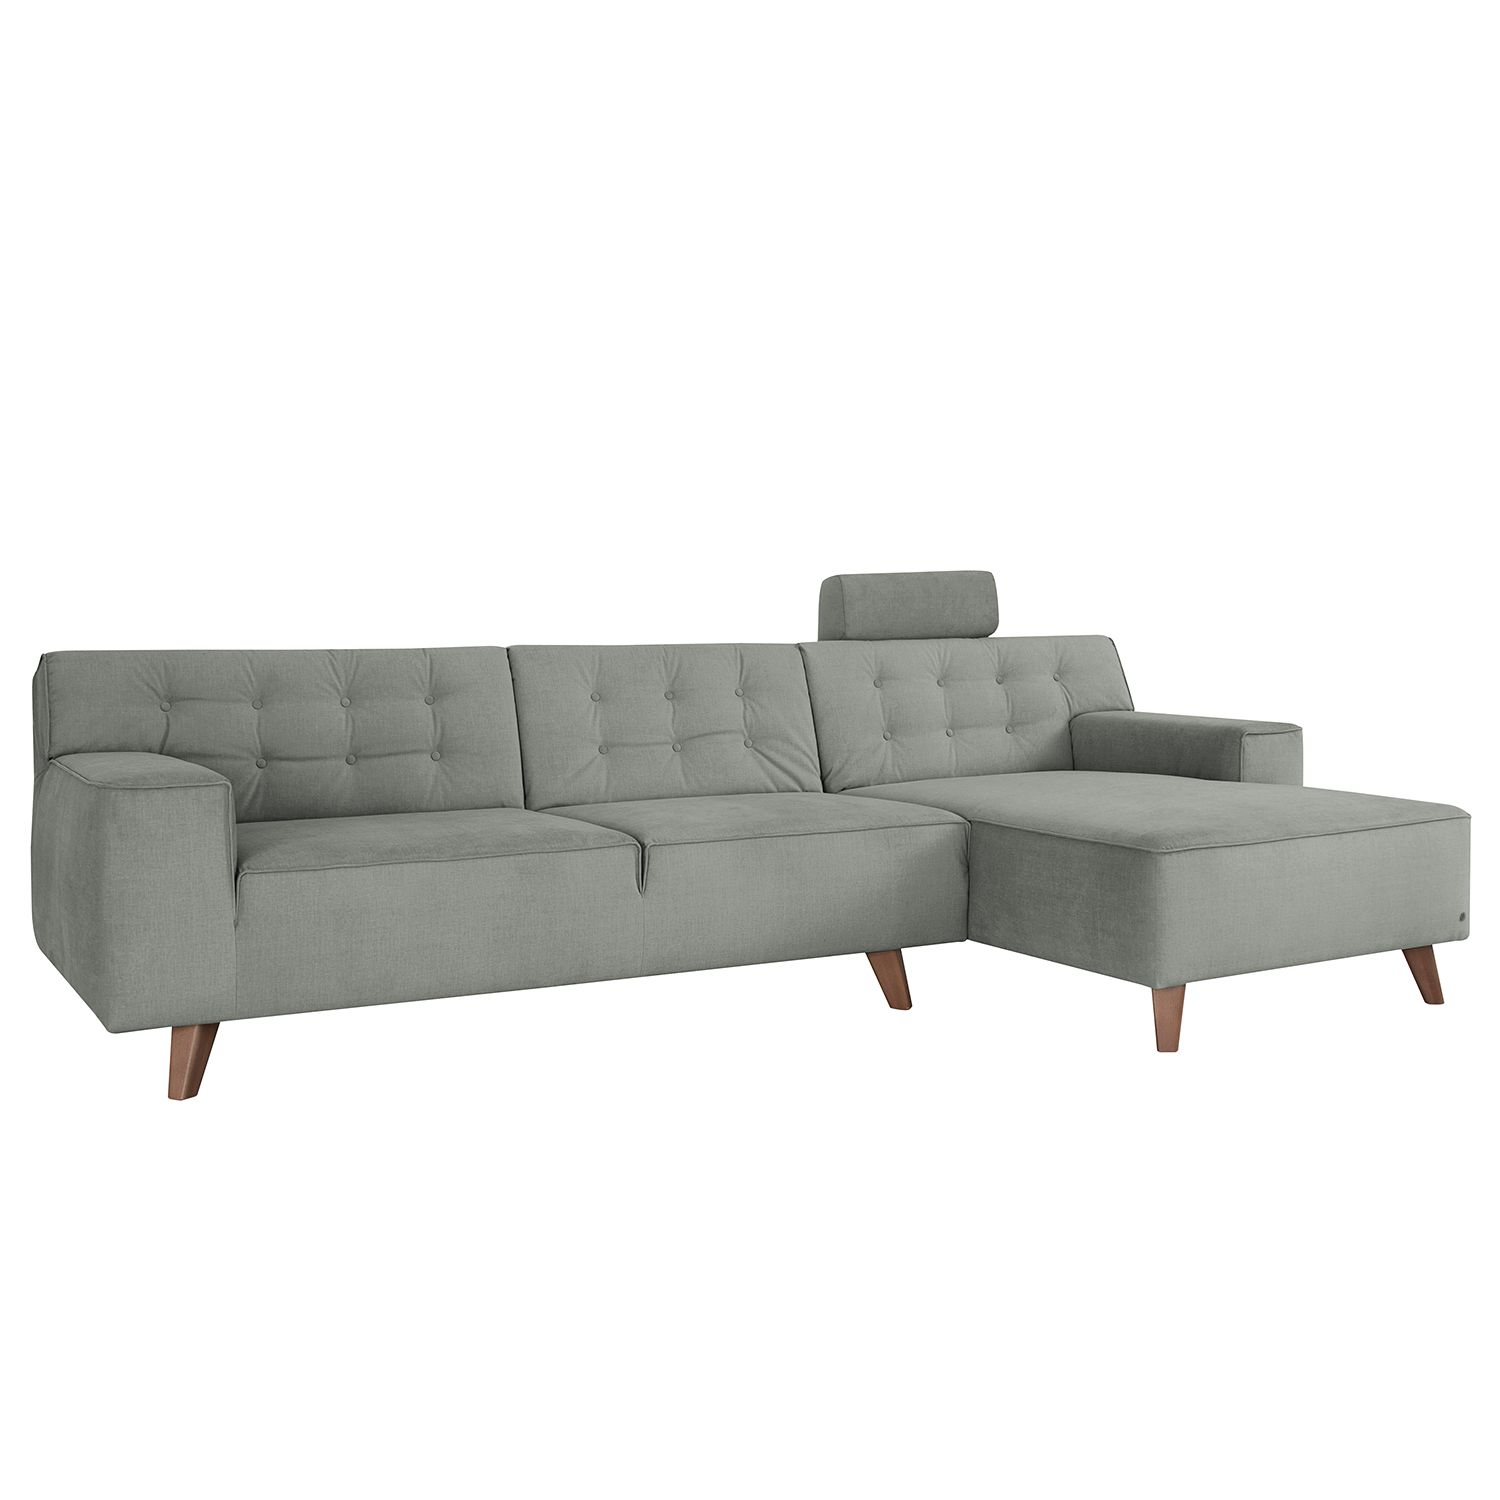 Full Size of Tom Tailor Sofa Heaven Xl Otto Couch S Elements Big Nordic Chic Style Colors Cube Casual West Coast Pure Ecksofa Iii Webstoff Longchair Davorstehend Rechts Sofa Sofa Tom Tailor